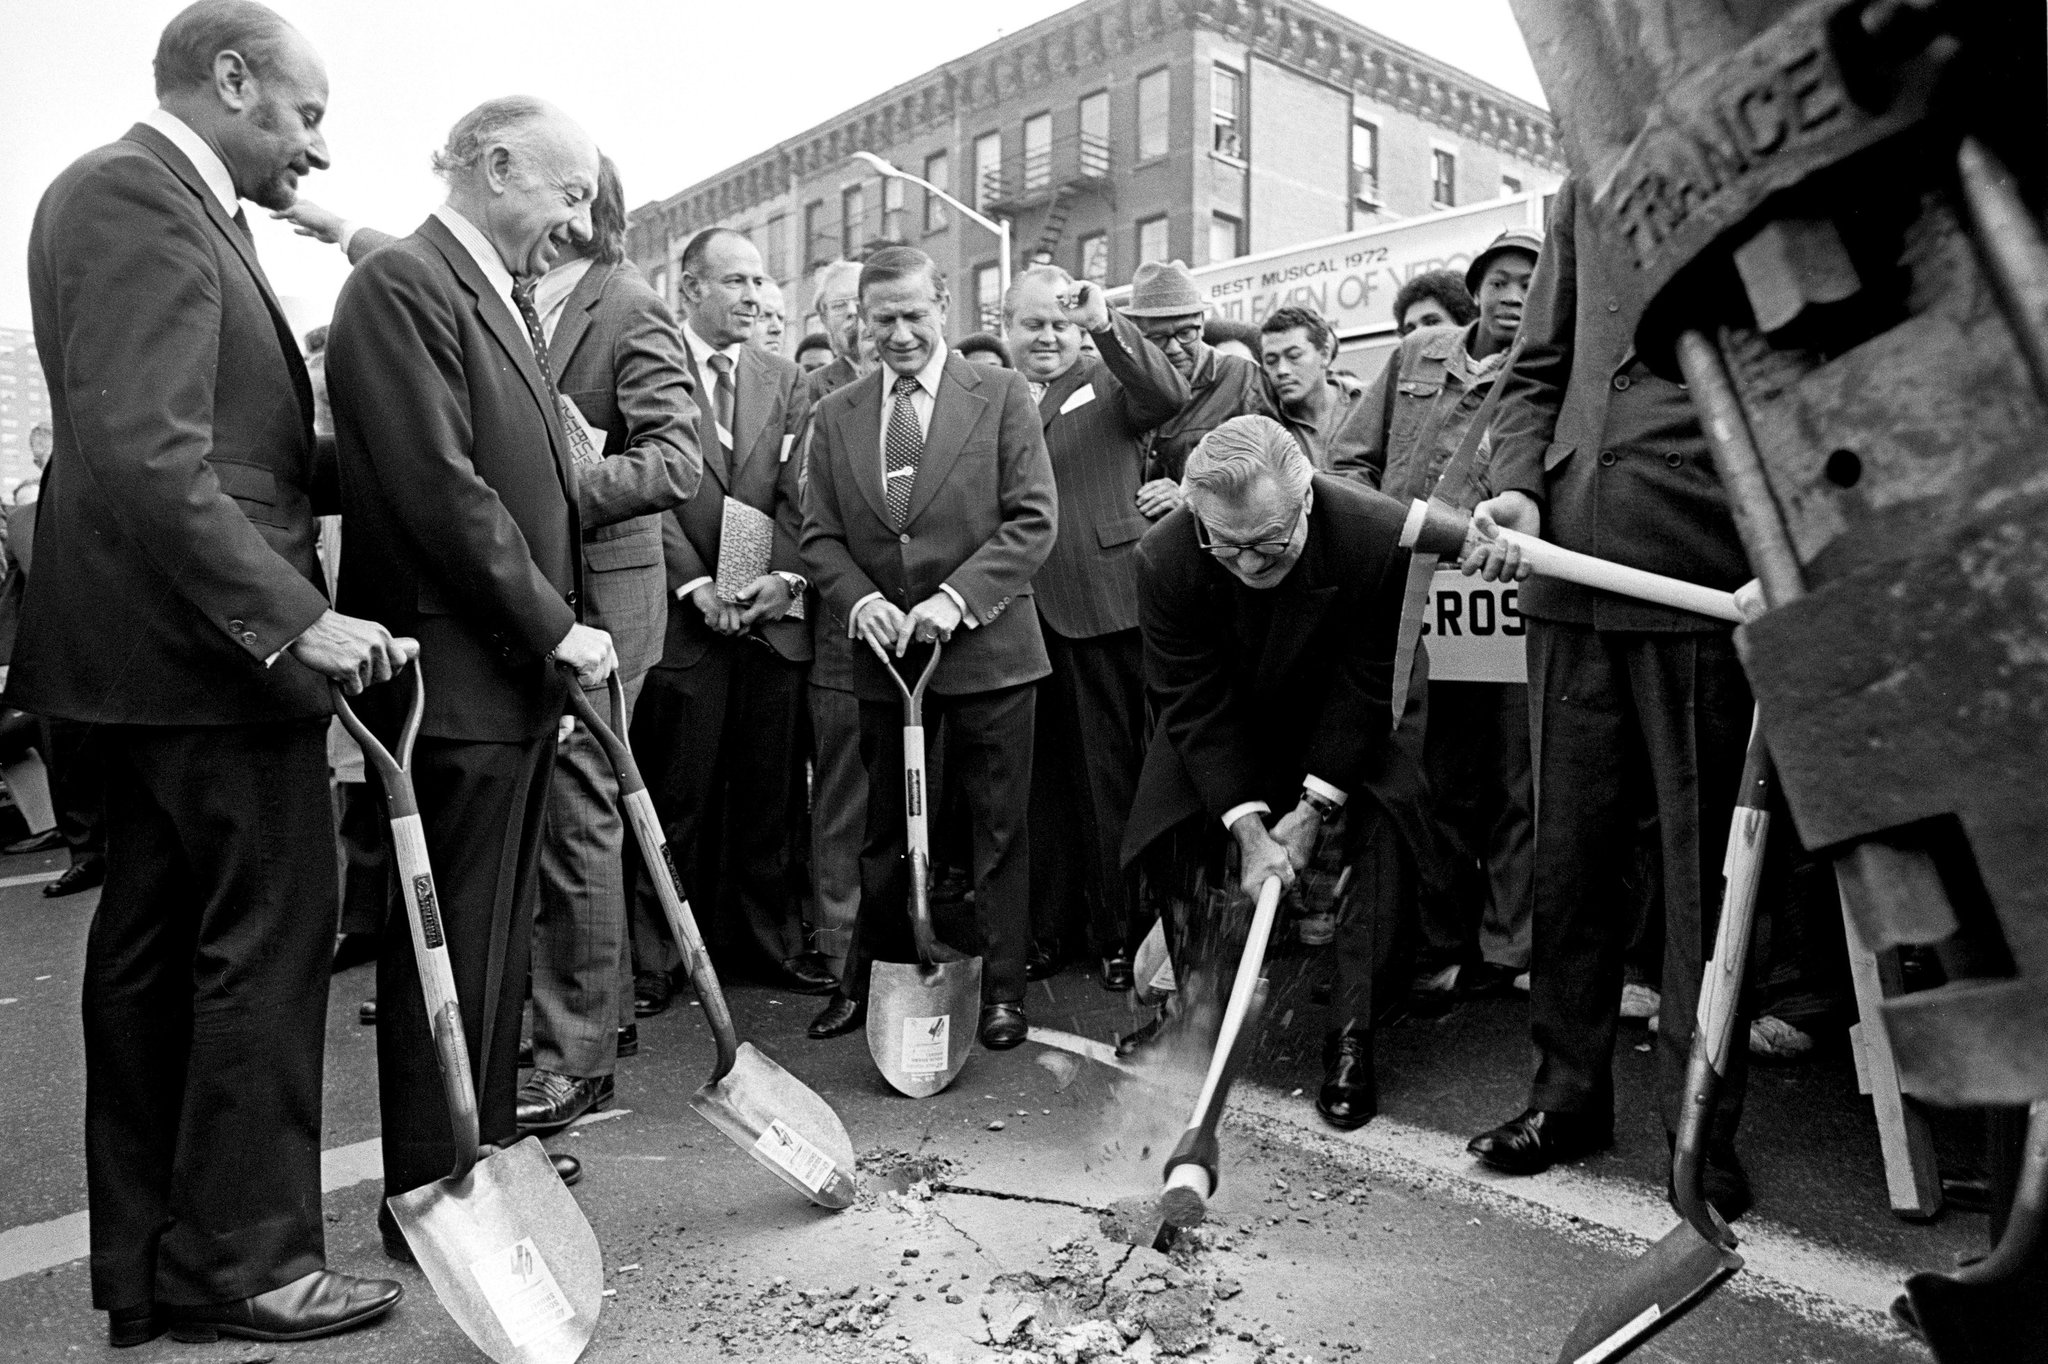 The Second Avenue groundbreaking in October 1972 (IMAGE: NEAL BOENZI/THE NEW YORK TIMES )